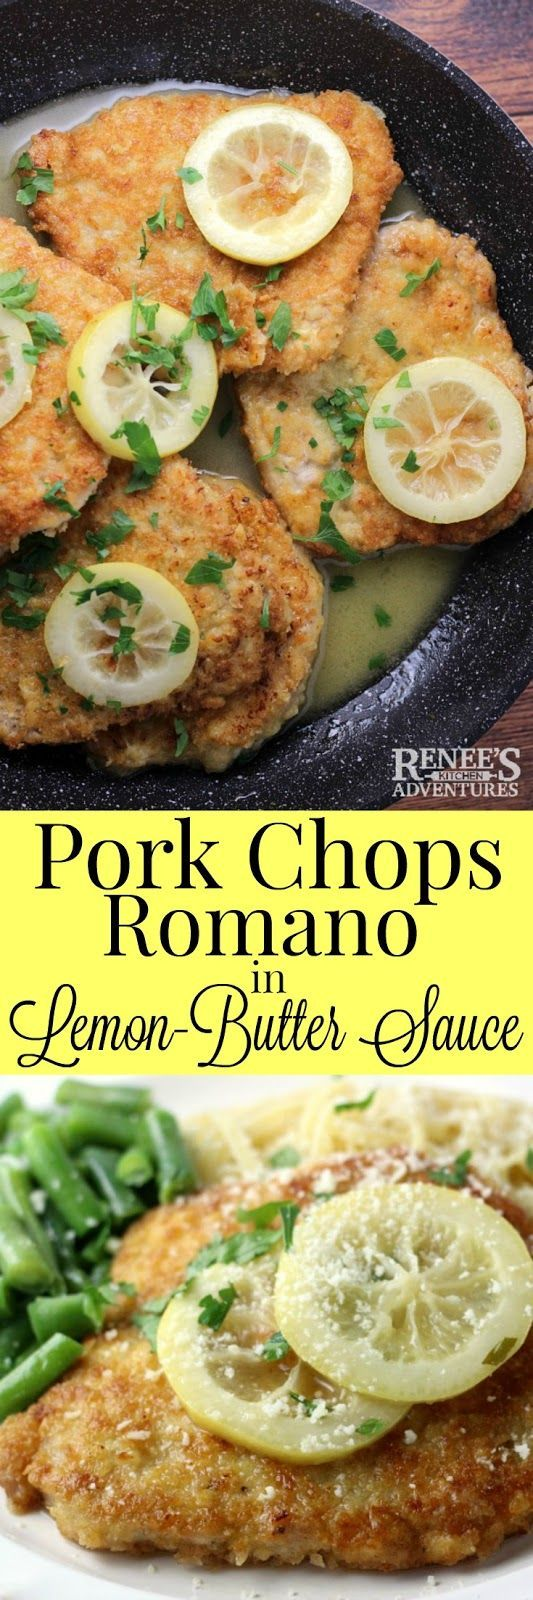 Pork Chops Romano in Lemon-Butter Sauce by Renee's Kitchen Adventures - easy…